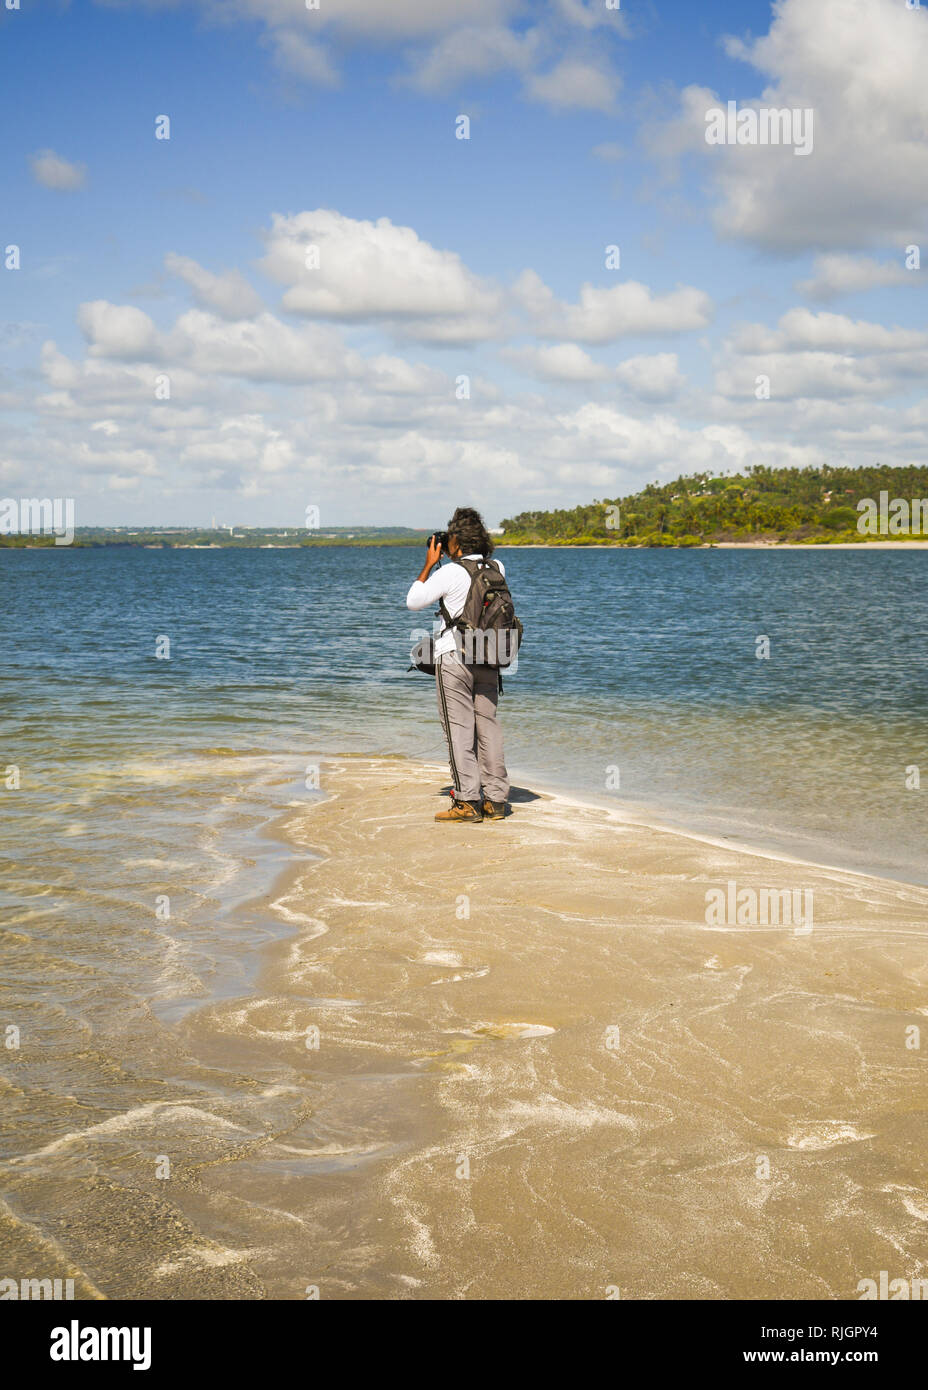 Male tourist taking pictures at the tip of Coroa do Aviao islet, Itamaraca island on the right - Pernambuco, Brazil - Stock Image